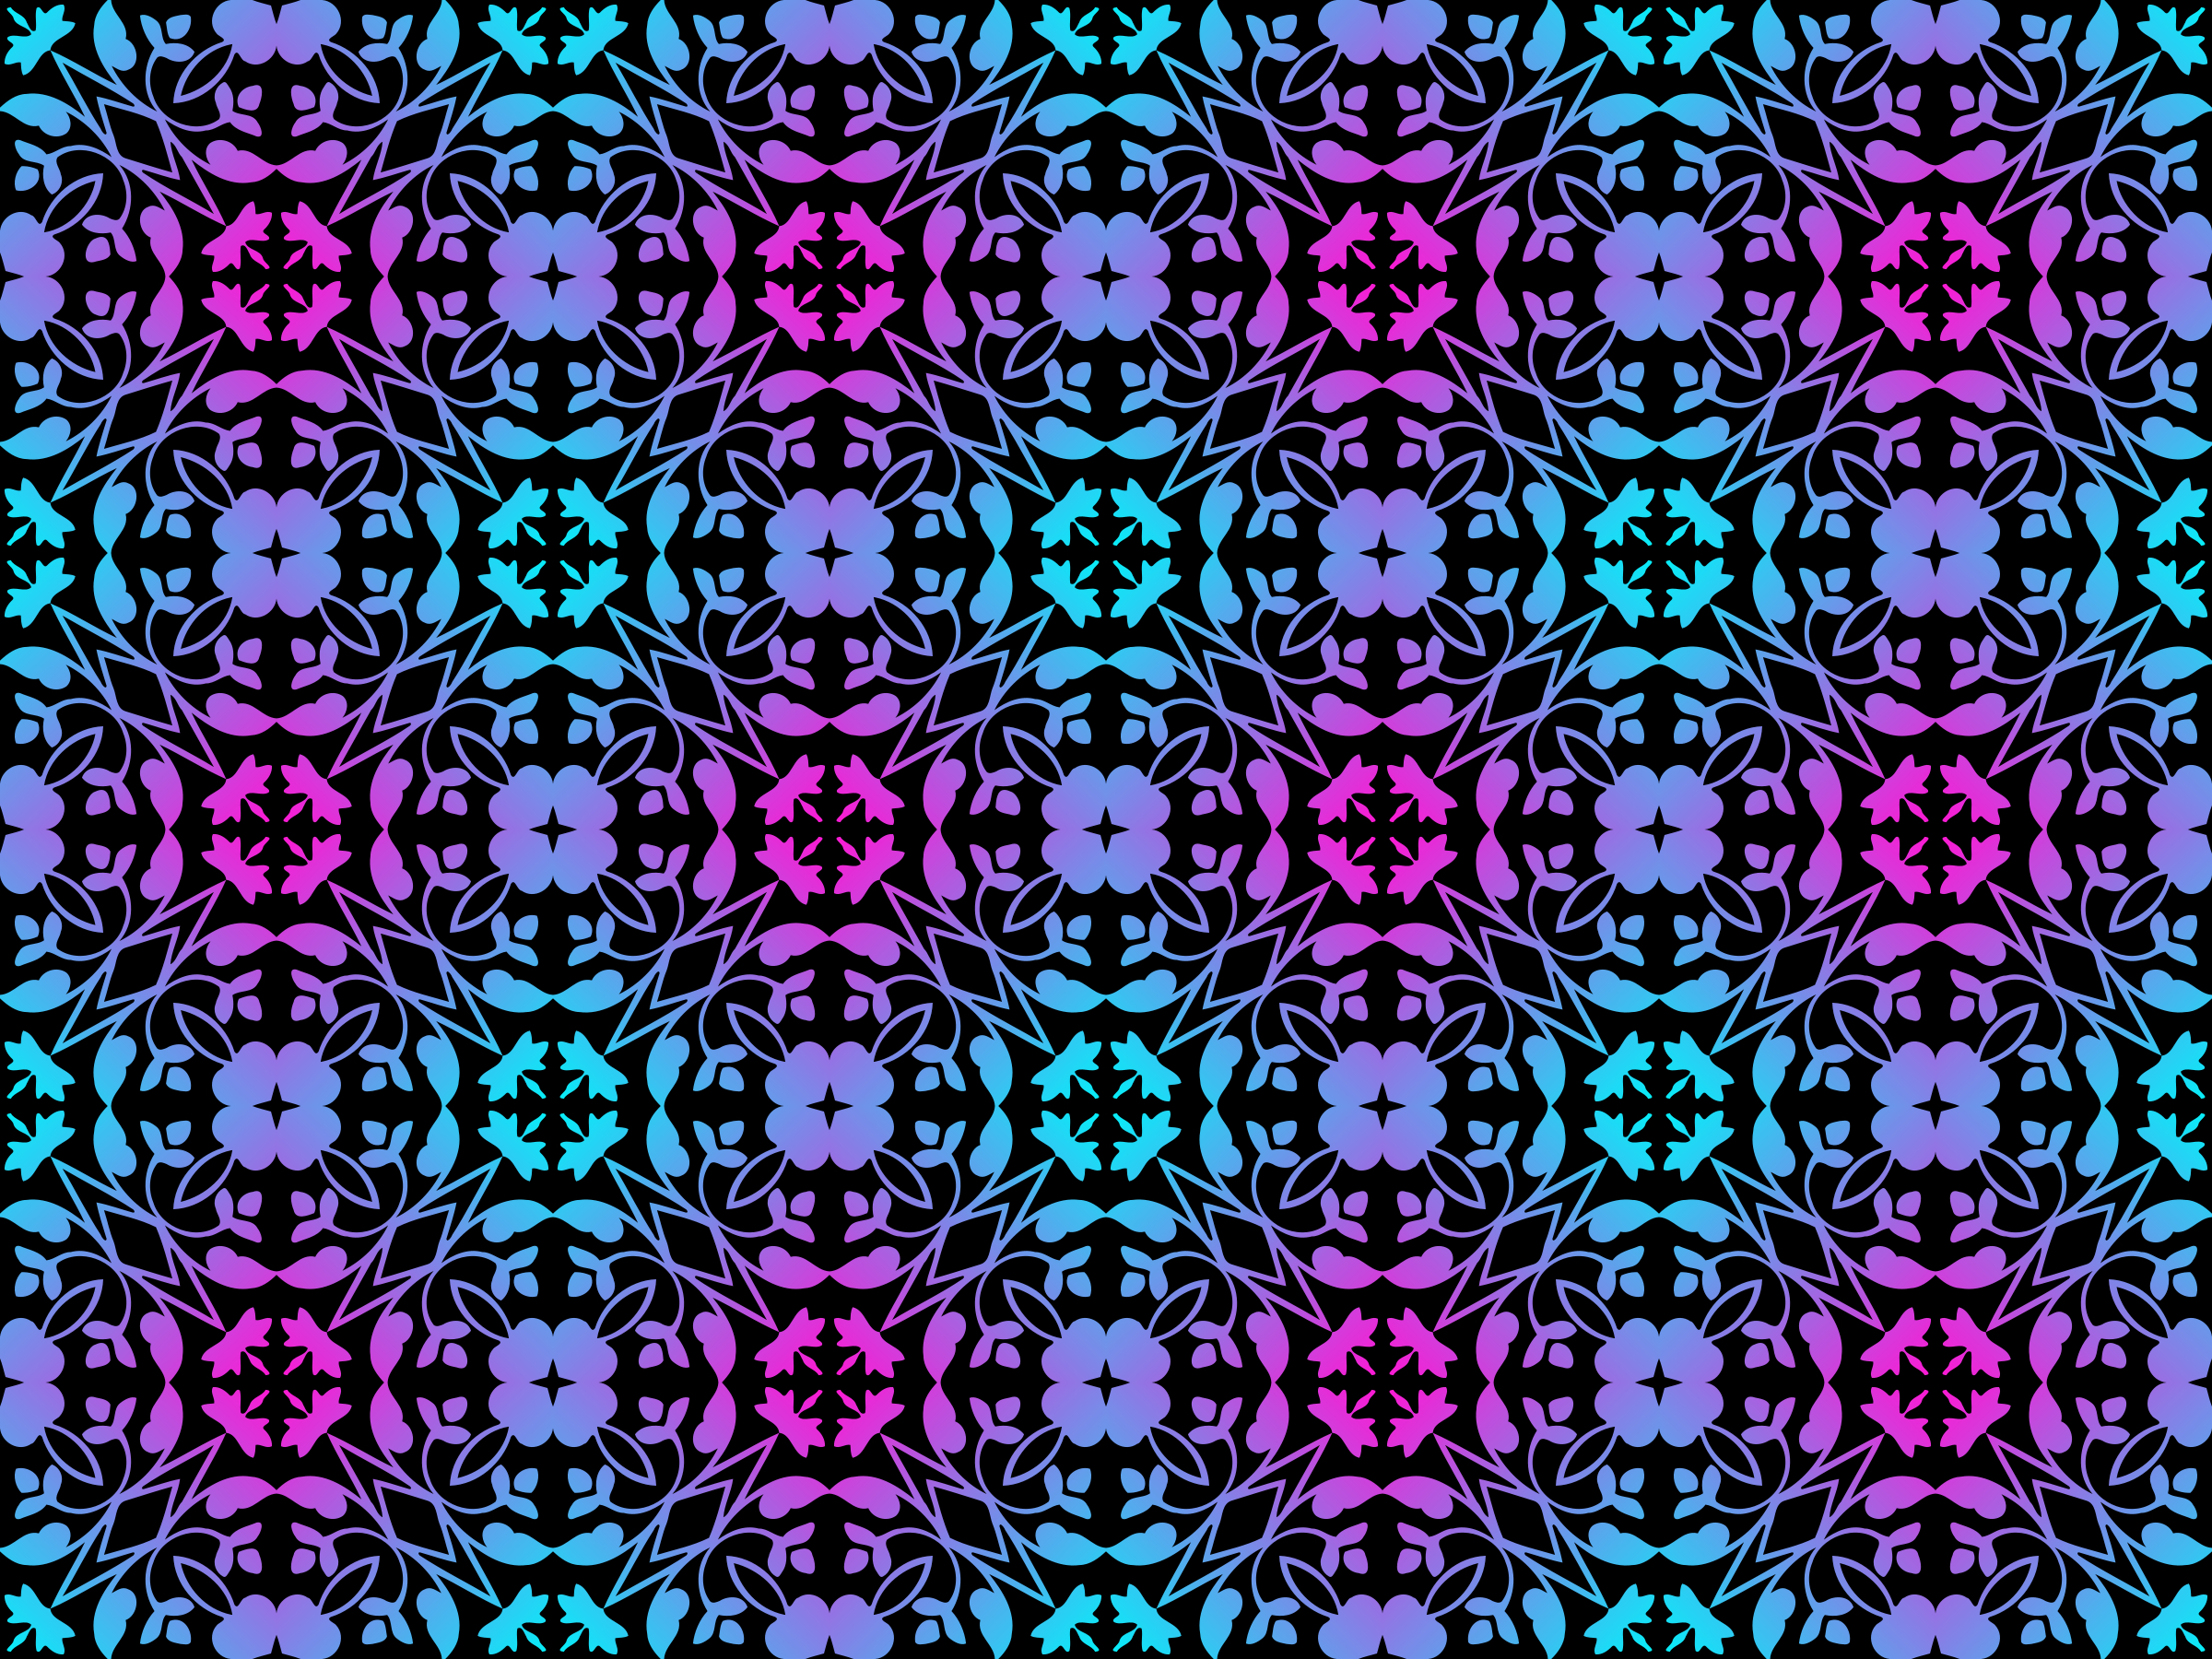 Background pattern 84 (colour) by Firkin